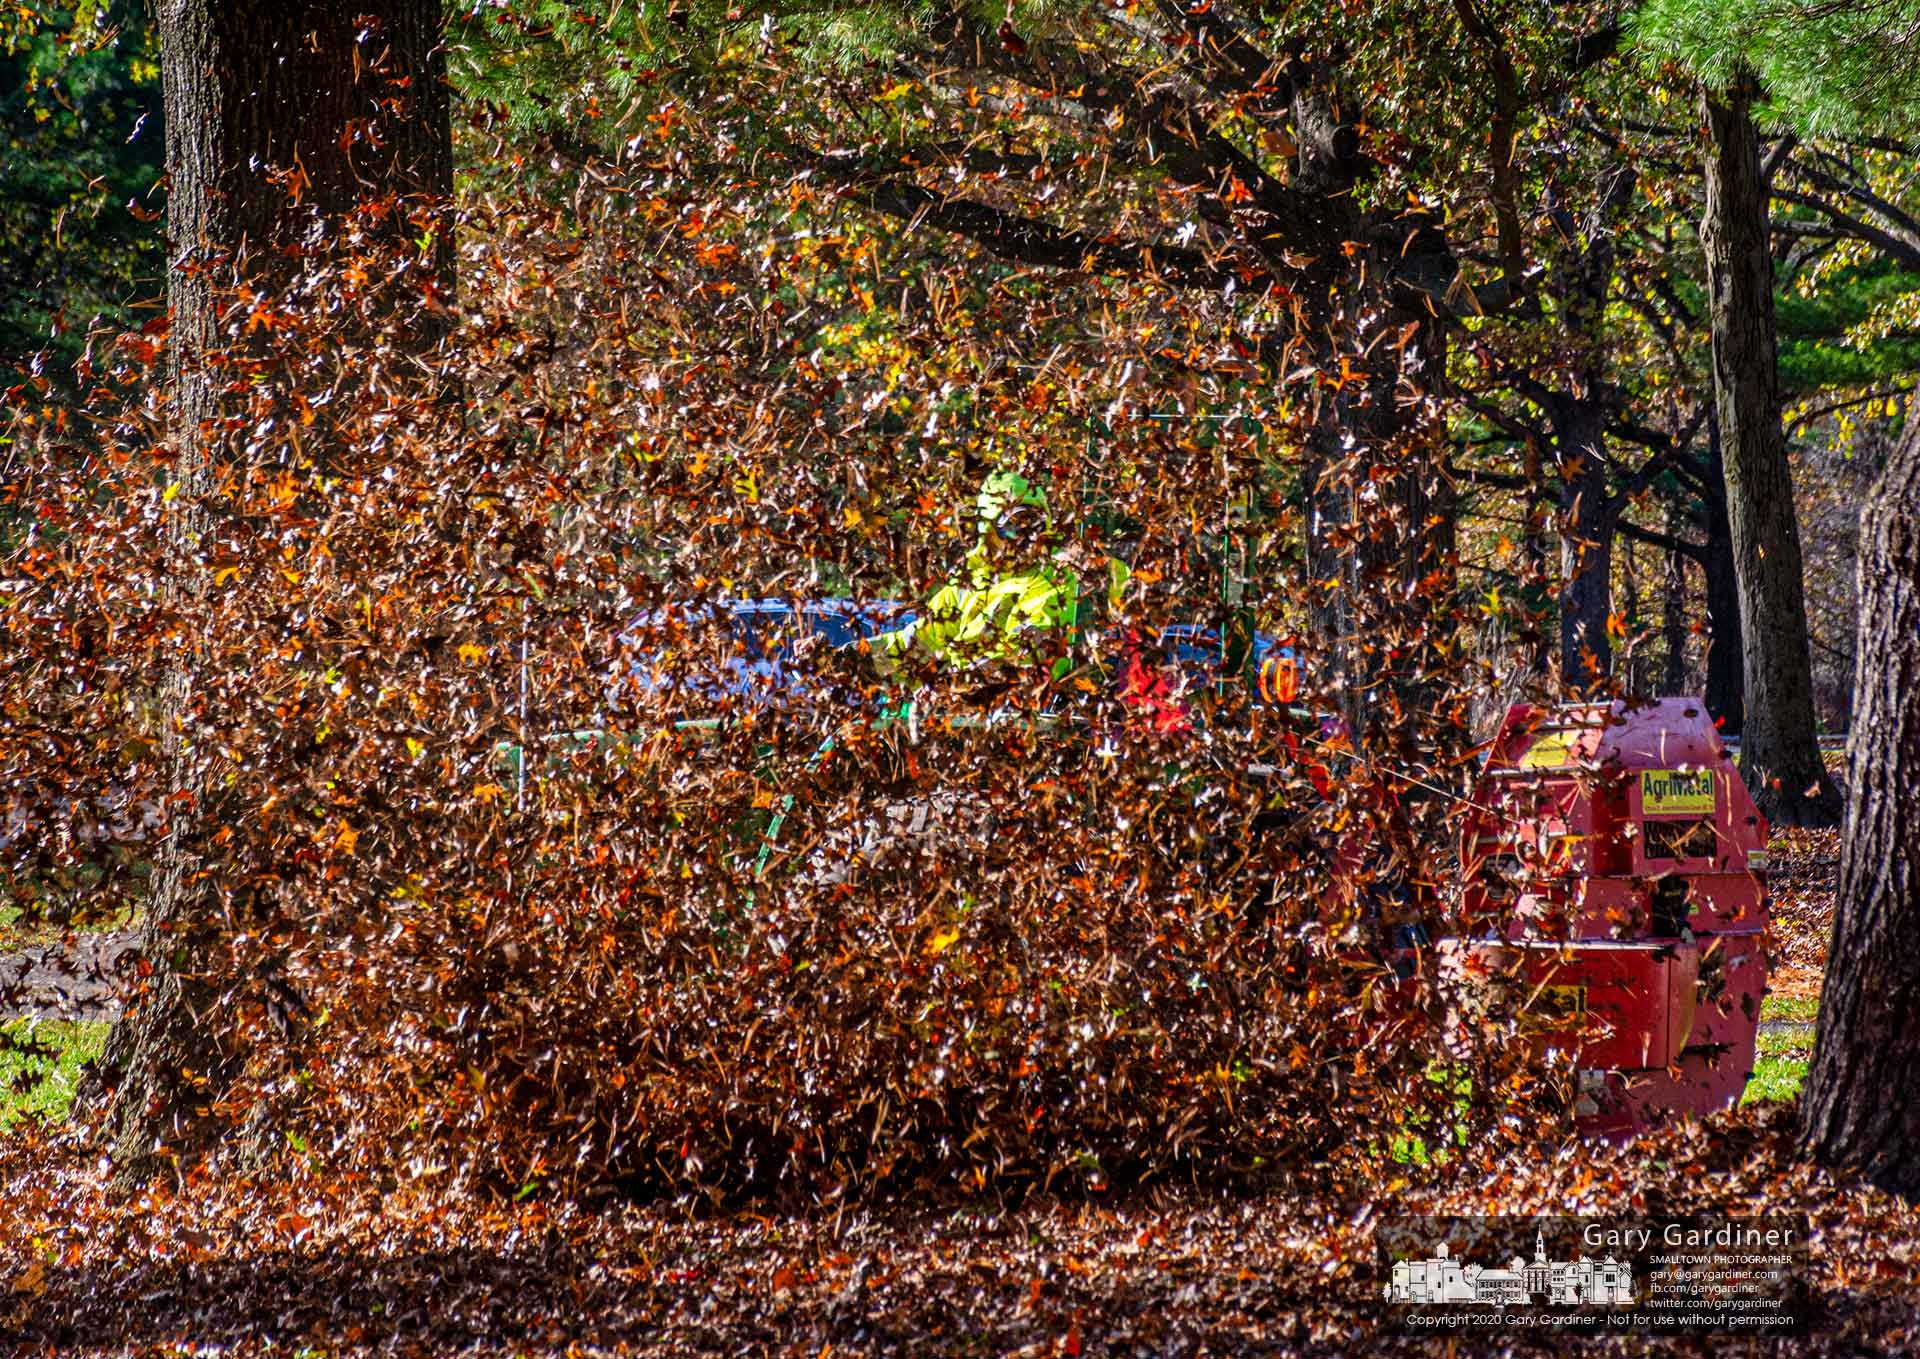 A worker driving a tractor pulling an industrial blower is obscured by leaves being cleared from the grounds at Sharon Woods Metro Park. My Final Photo for Nov. 2, 2020.